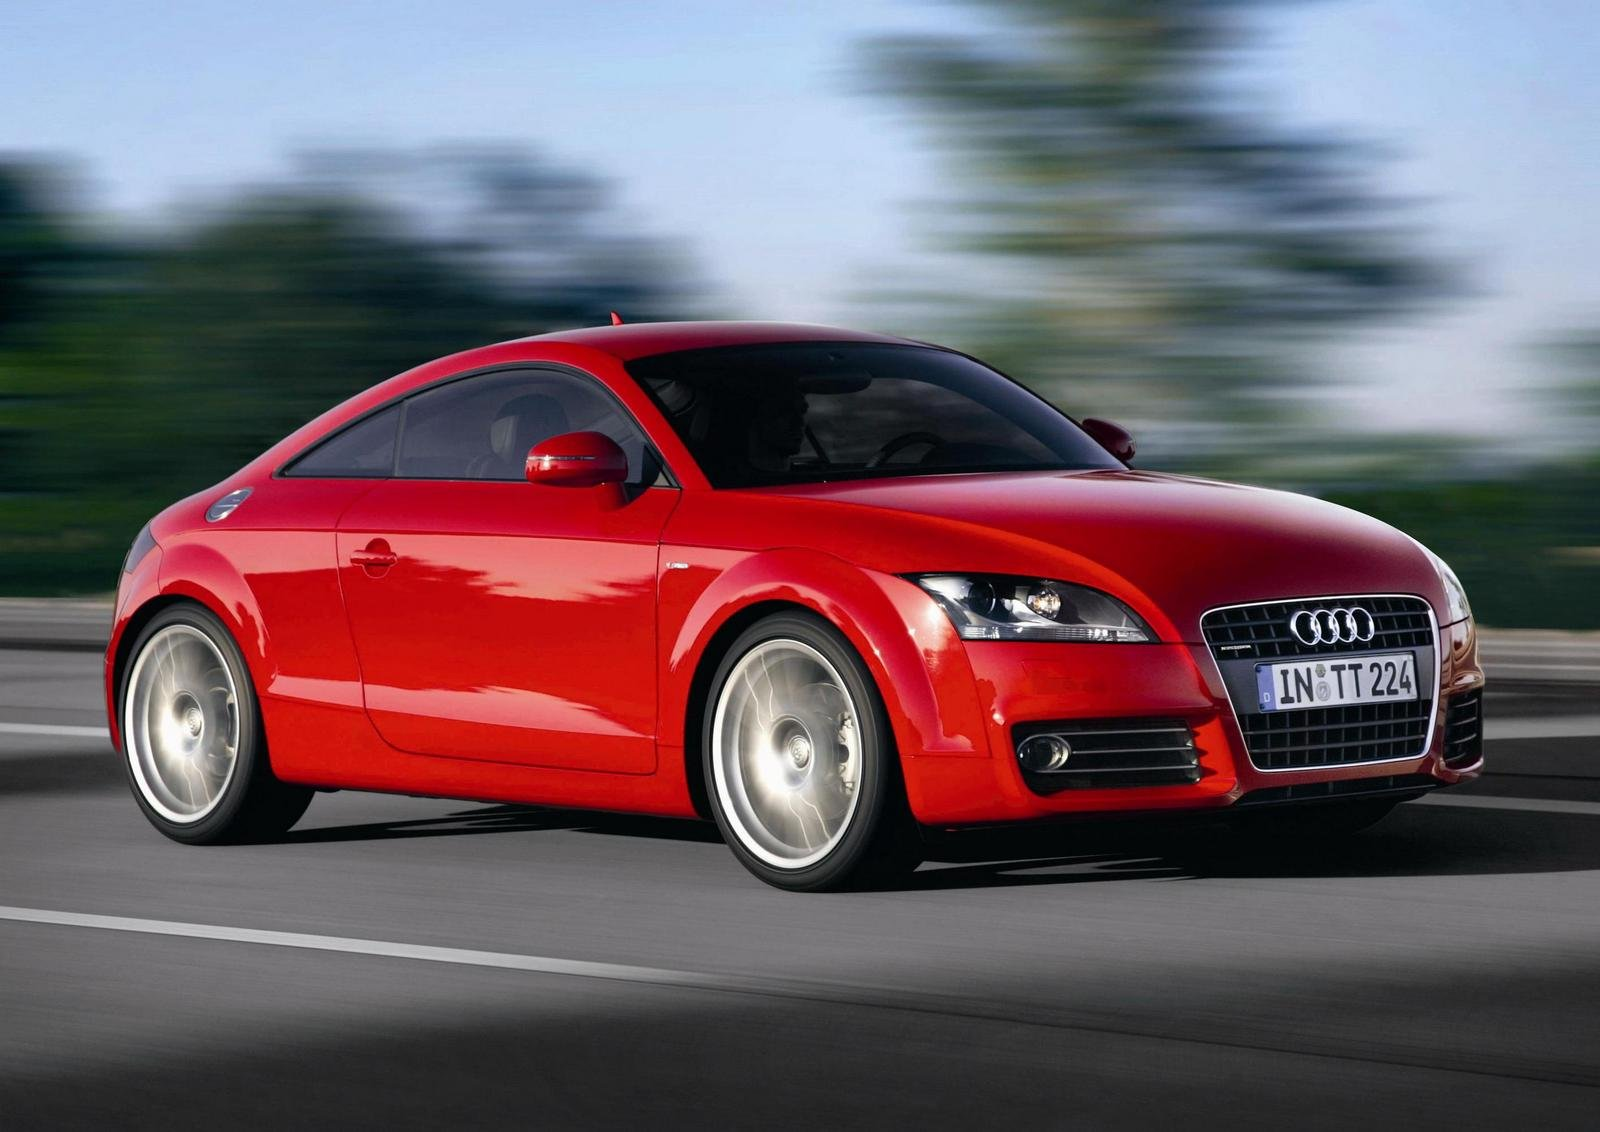 2008 audi tt 2 0 tdi quattro review top speed. Black Bedroom Furniture Sets. Home Design Ideas